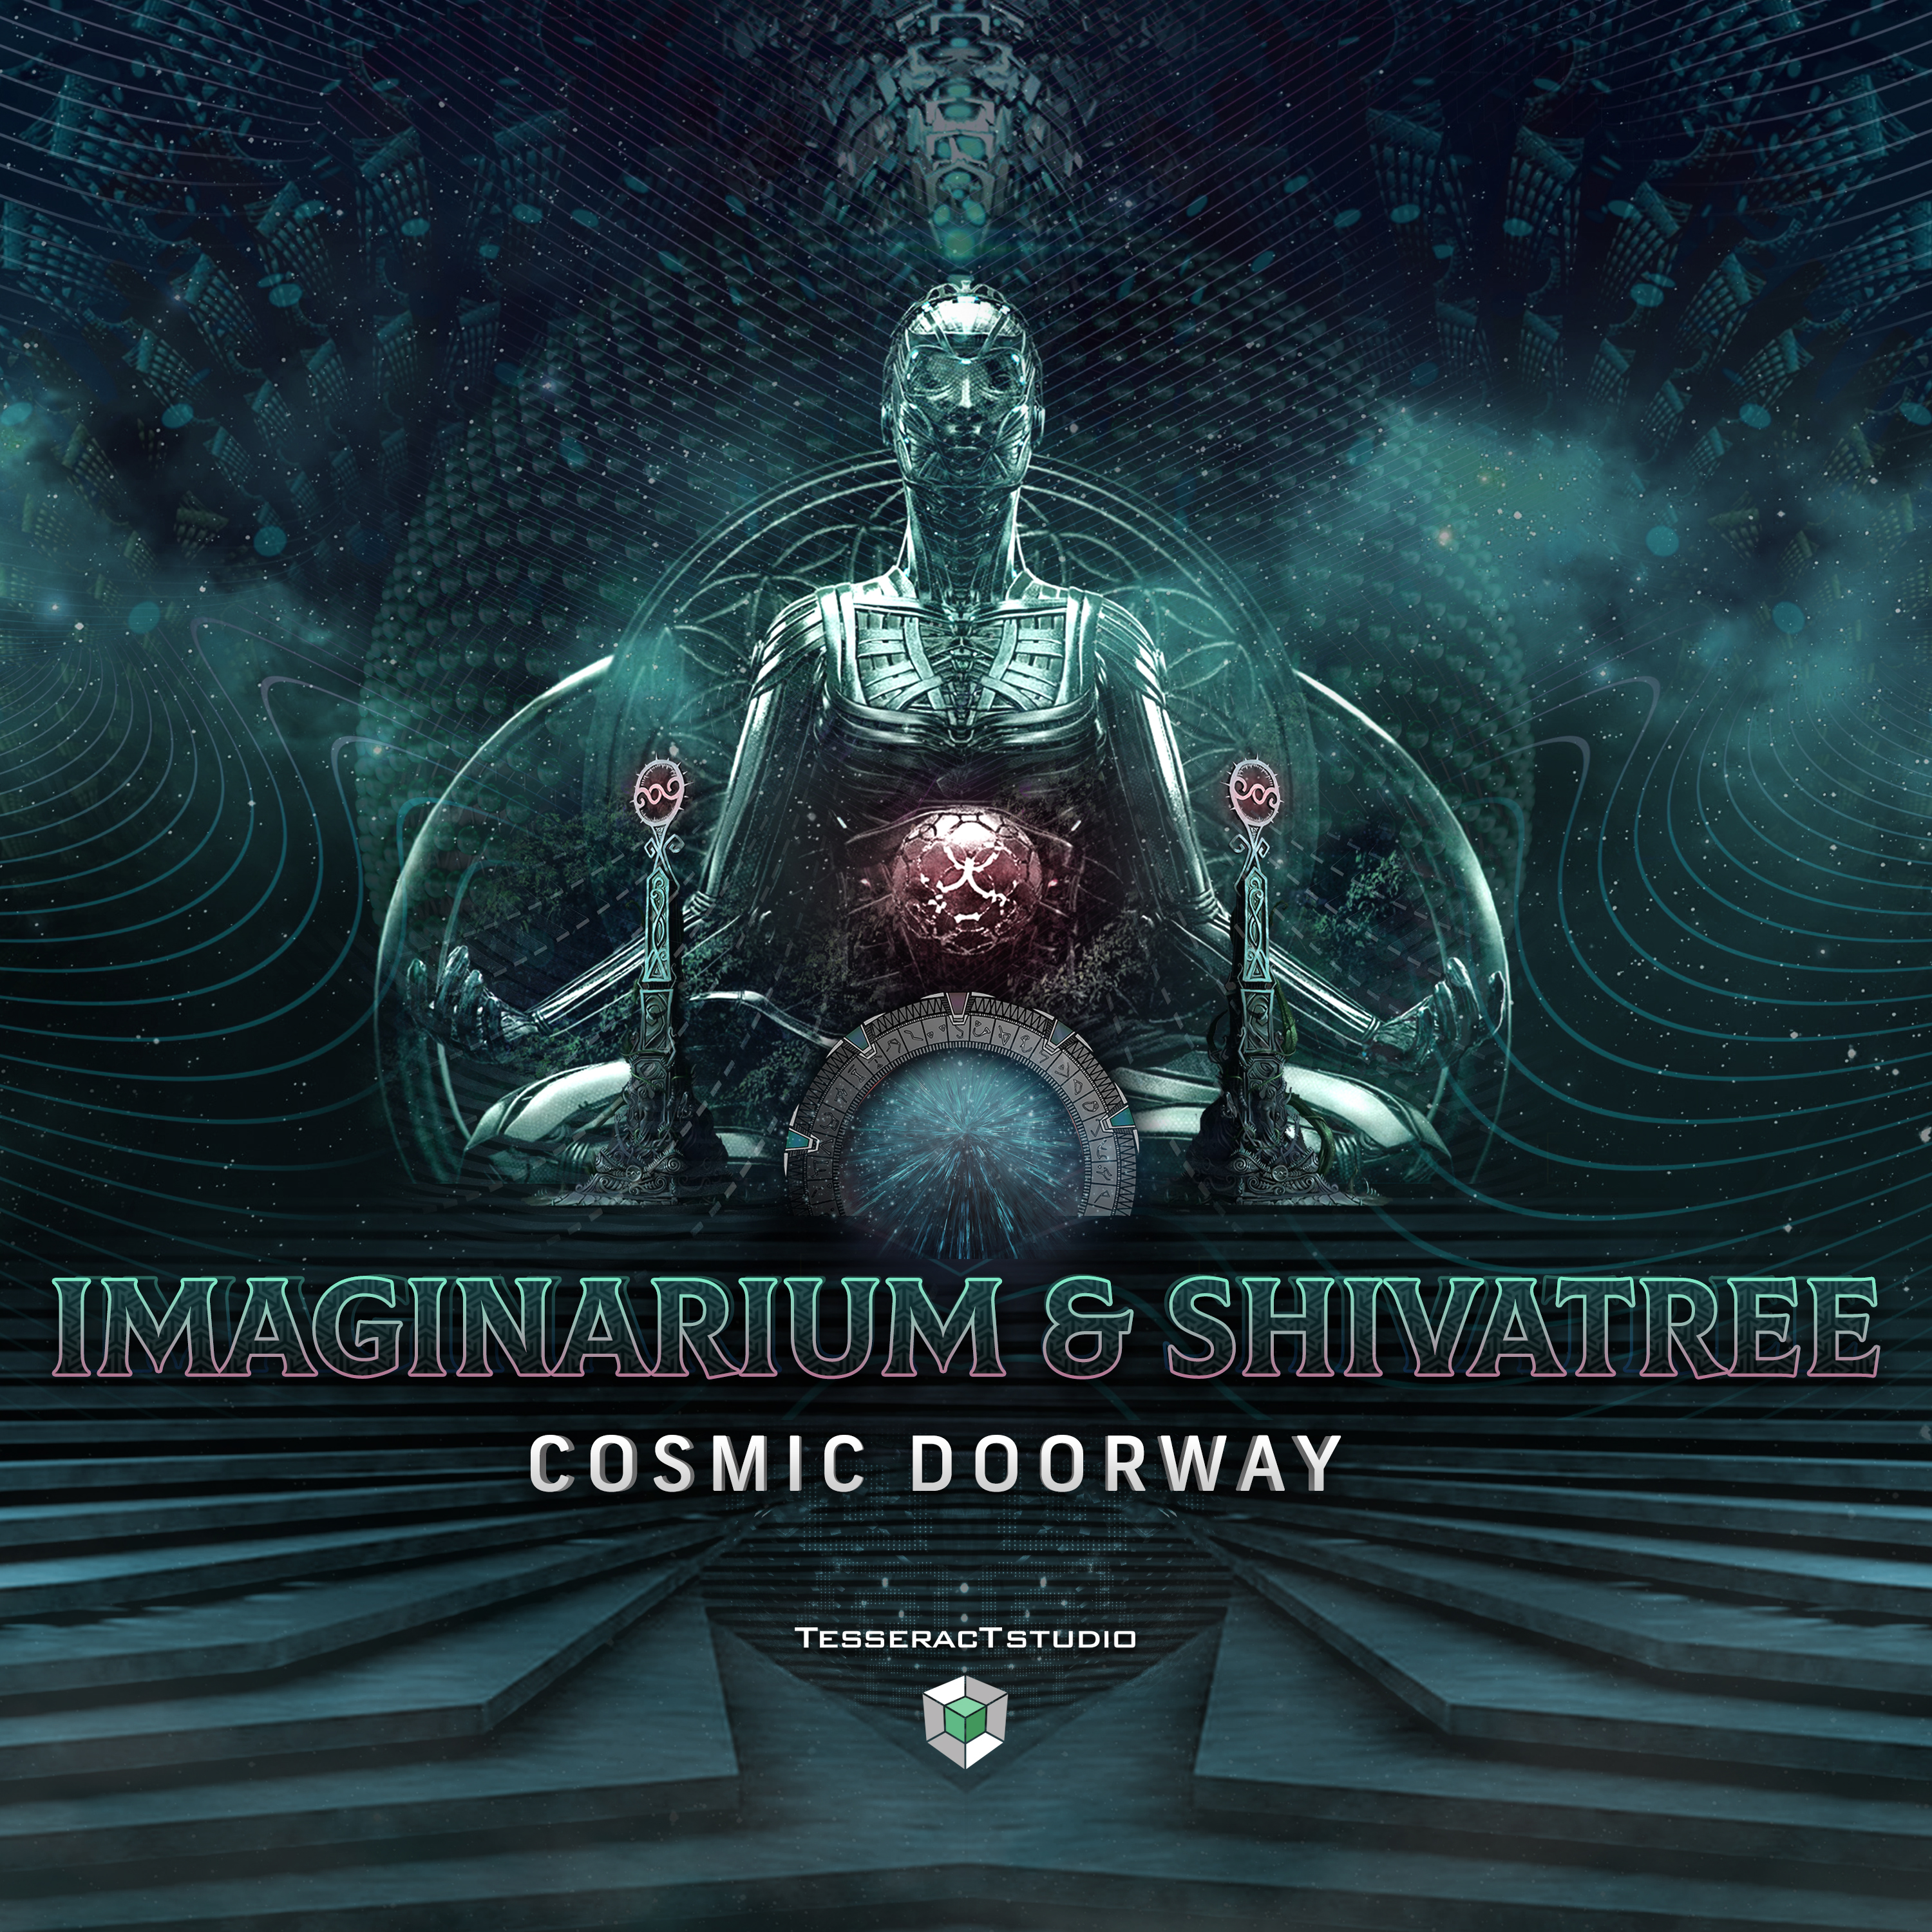 Cosmic Dorway from Imaginarium & ShivaTree is out!